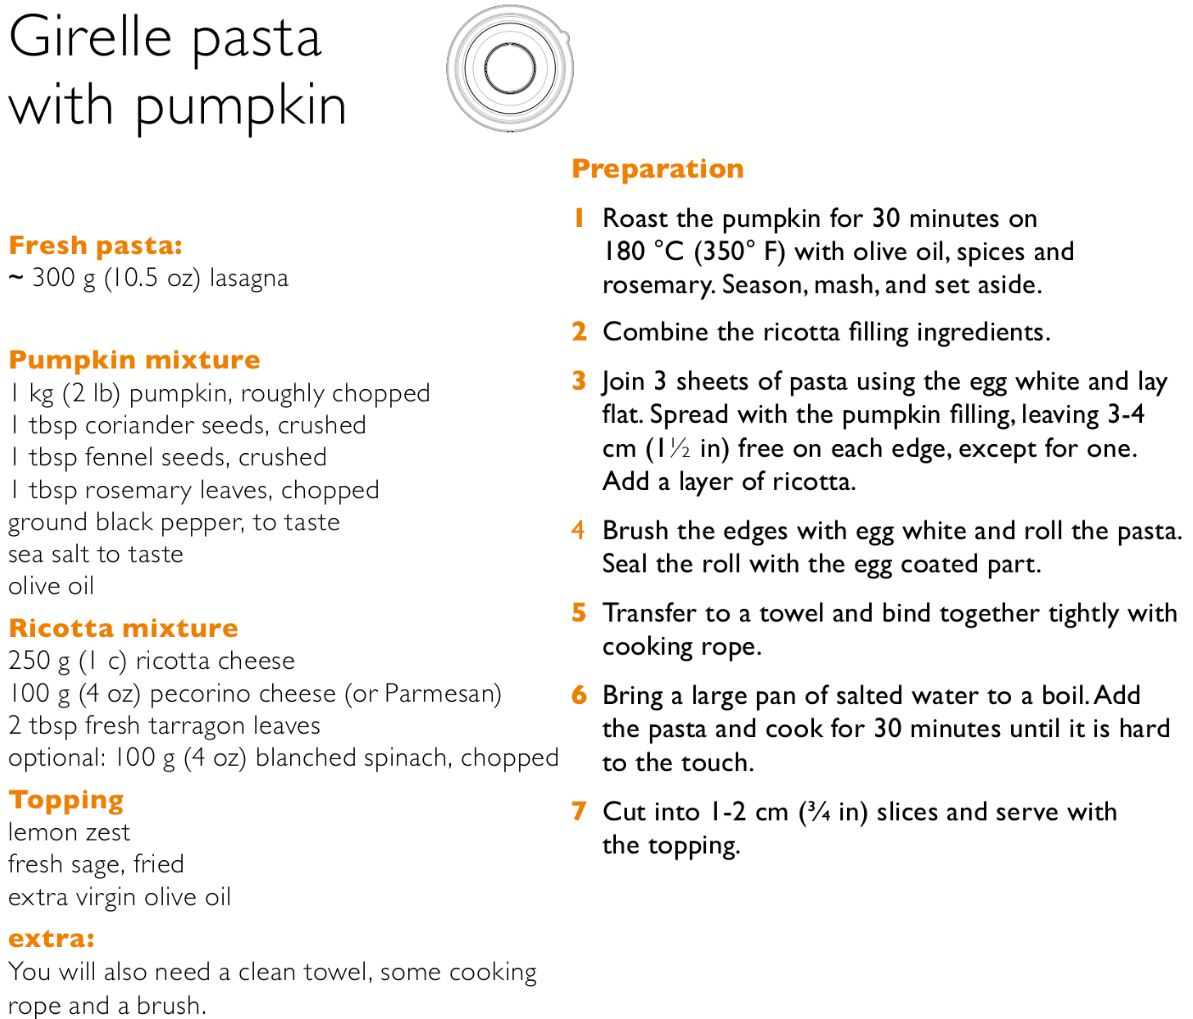 girelle_pasta_with_pumpkin